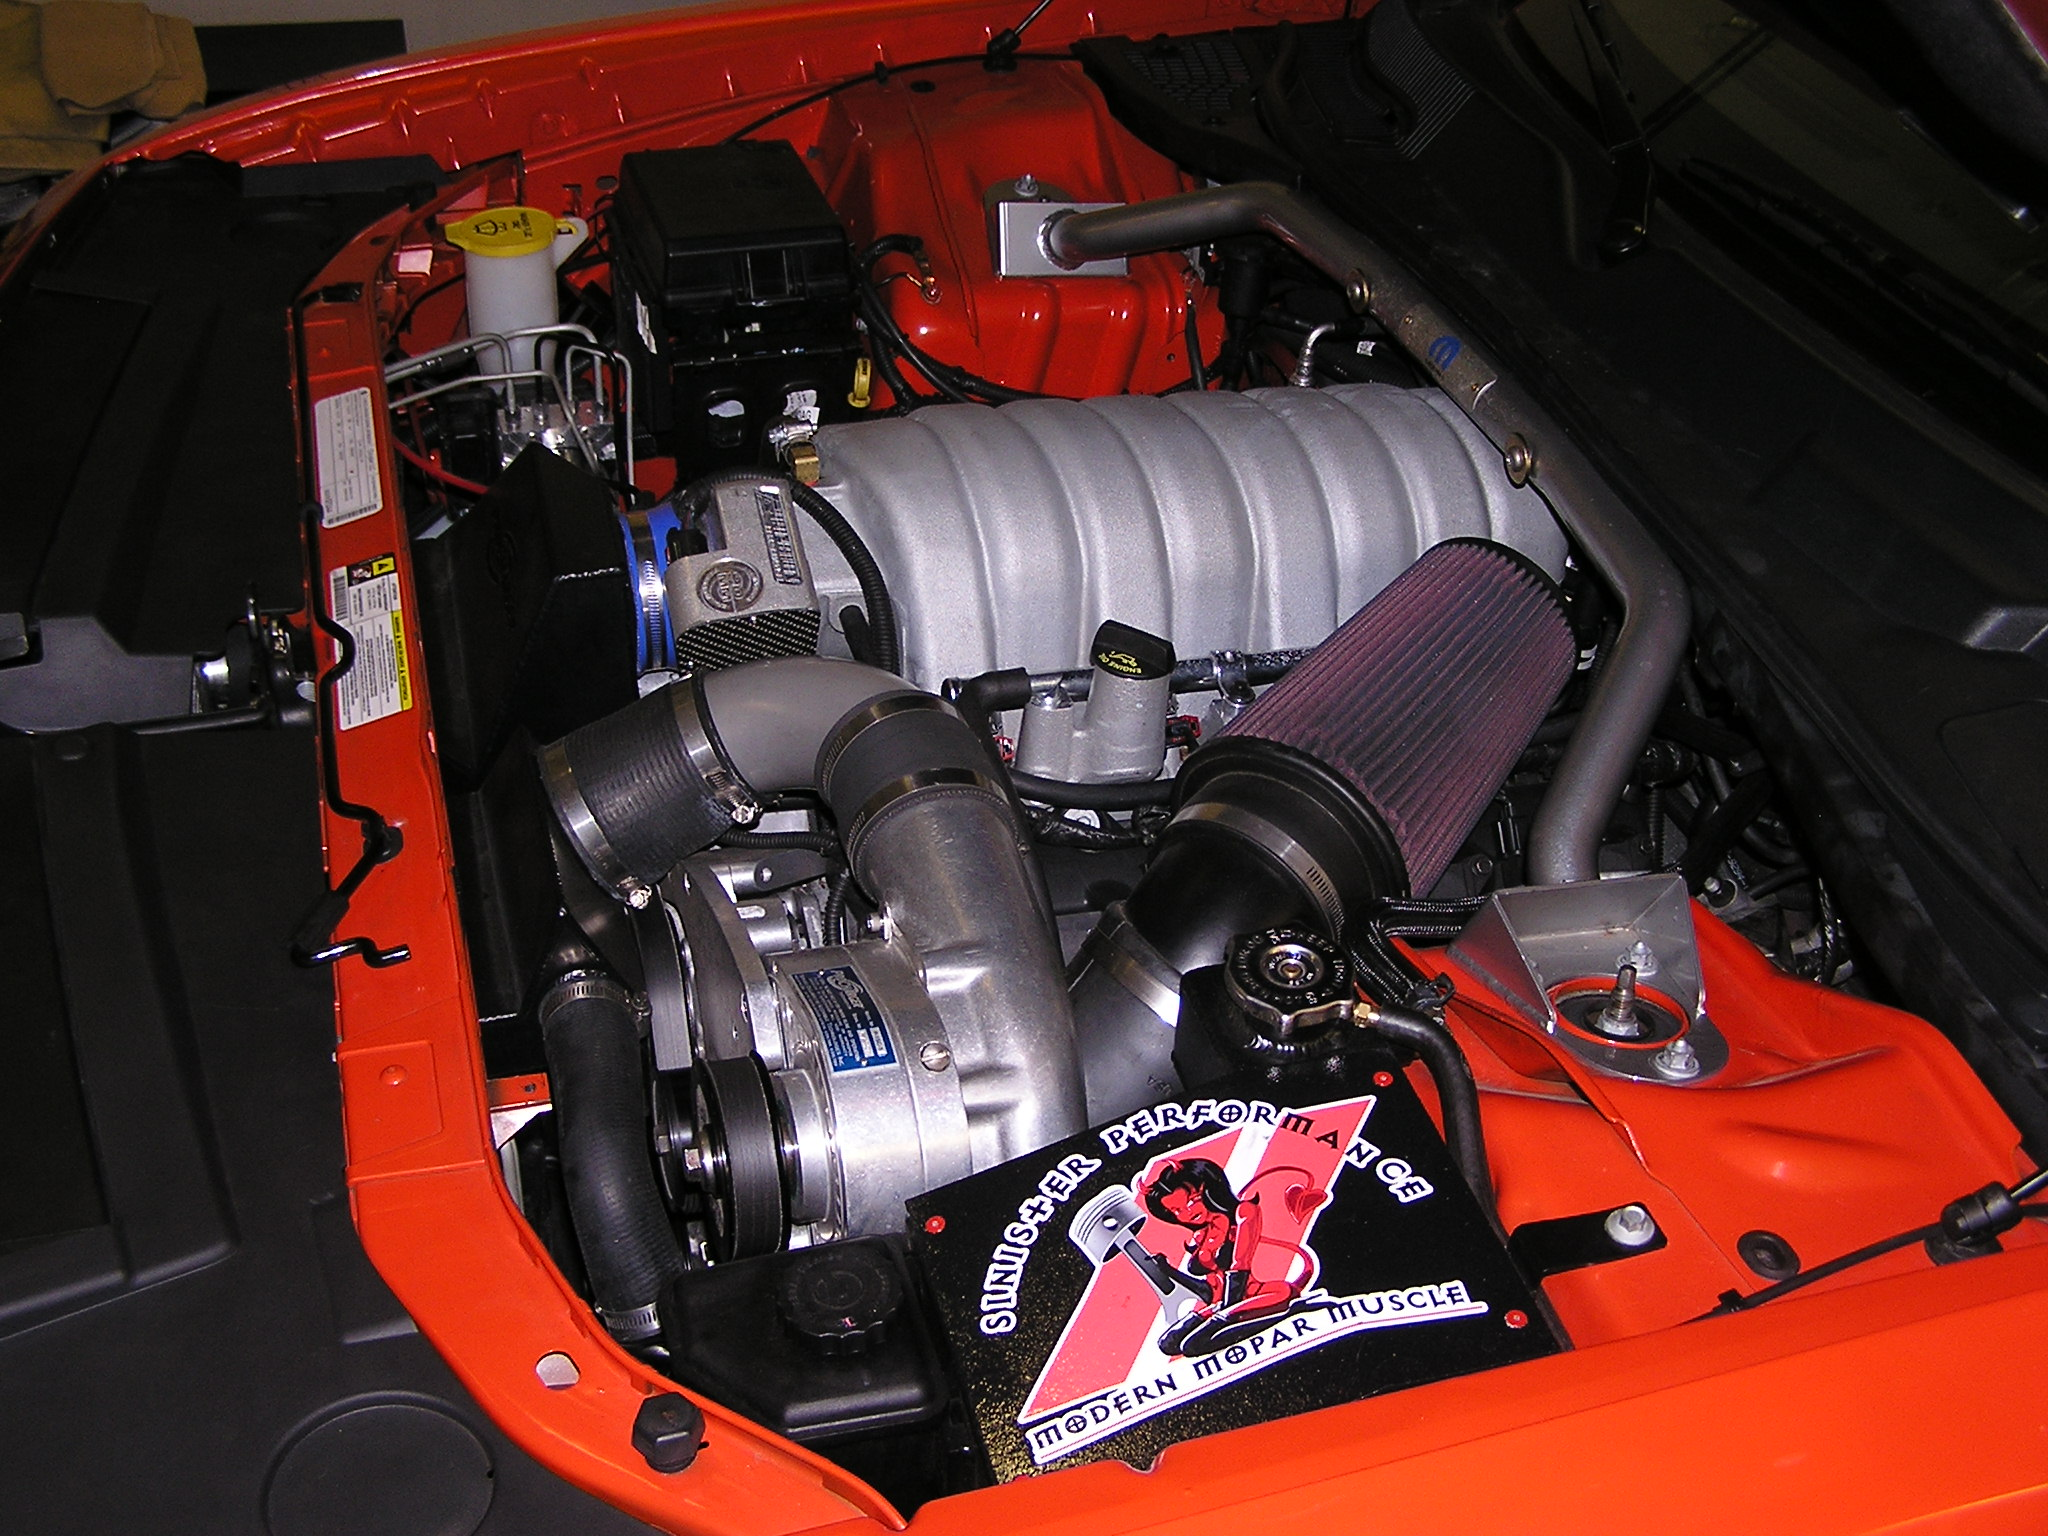 Fineline Imports 541 Whp 549 Wtq 2009 Dodge Challenger Stroked 6 4 Liter